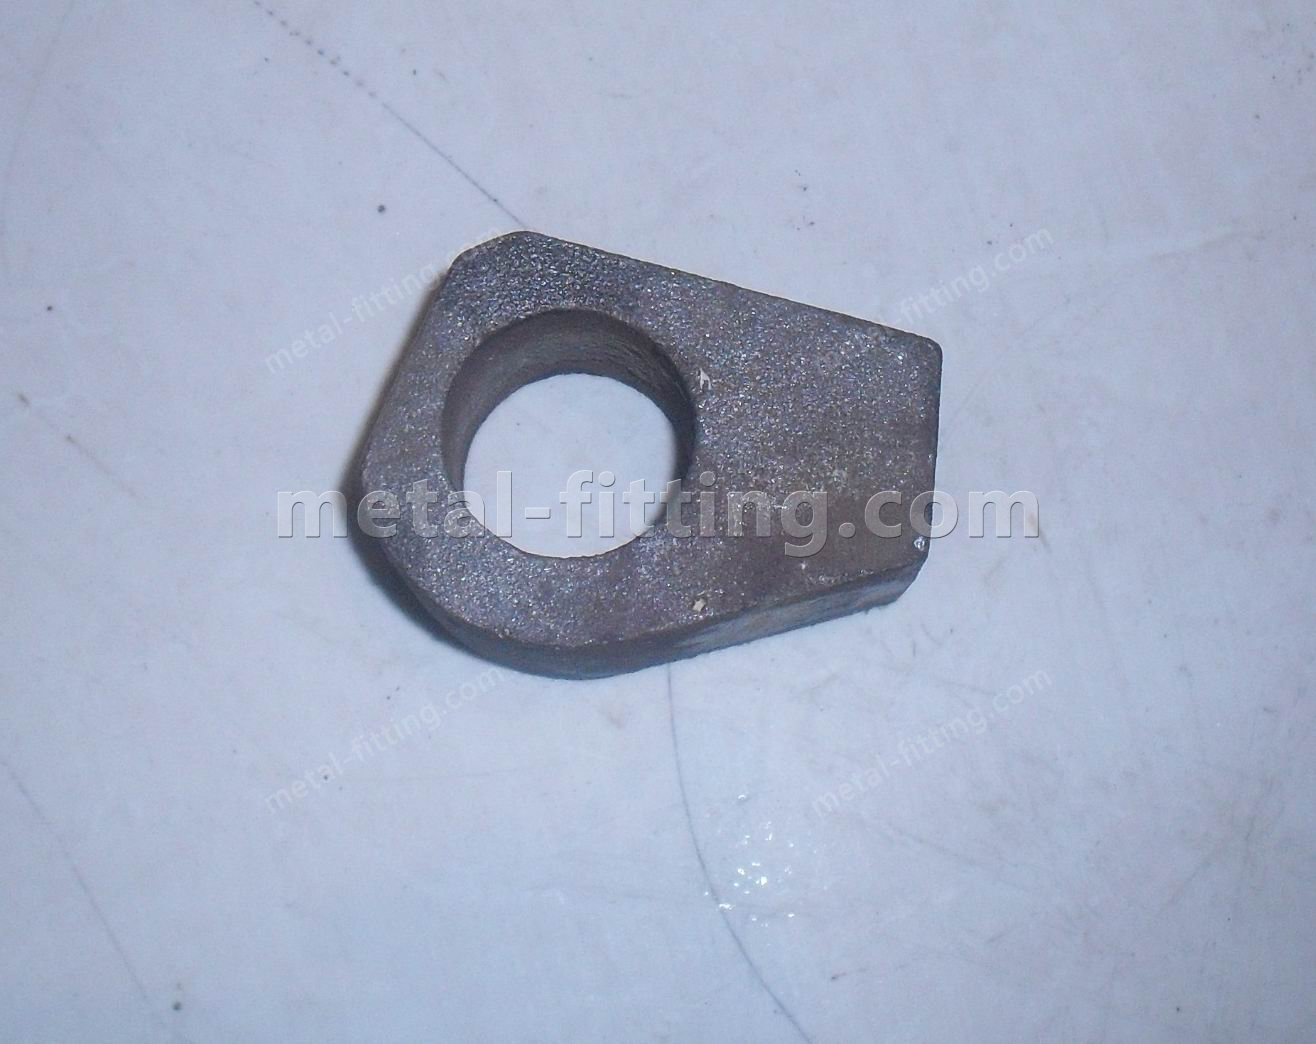 Machined Parts and Steel Parts-建筑件 (12)